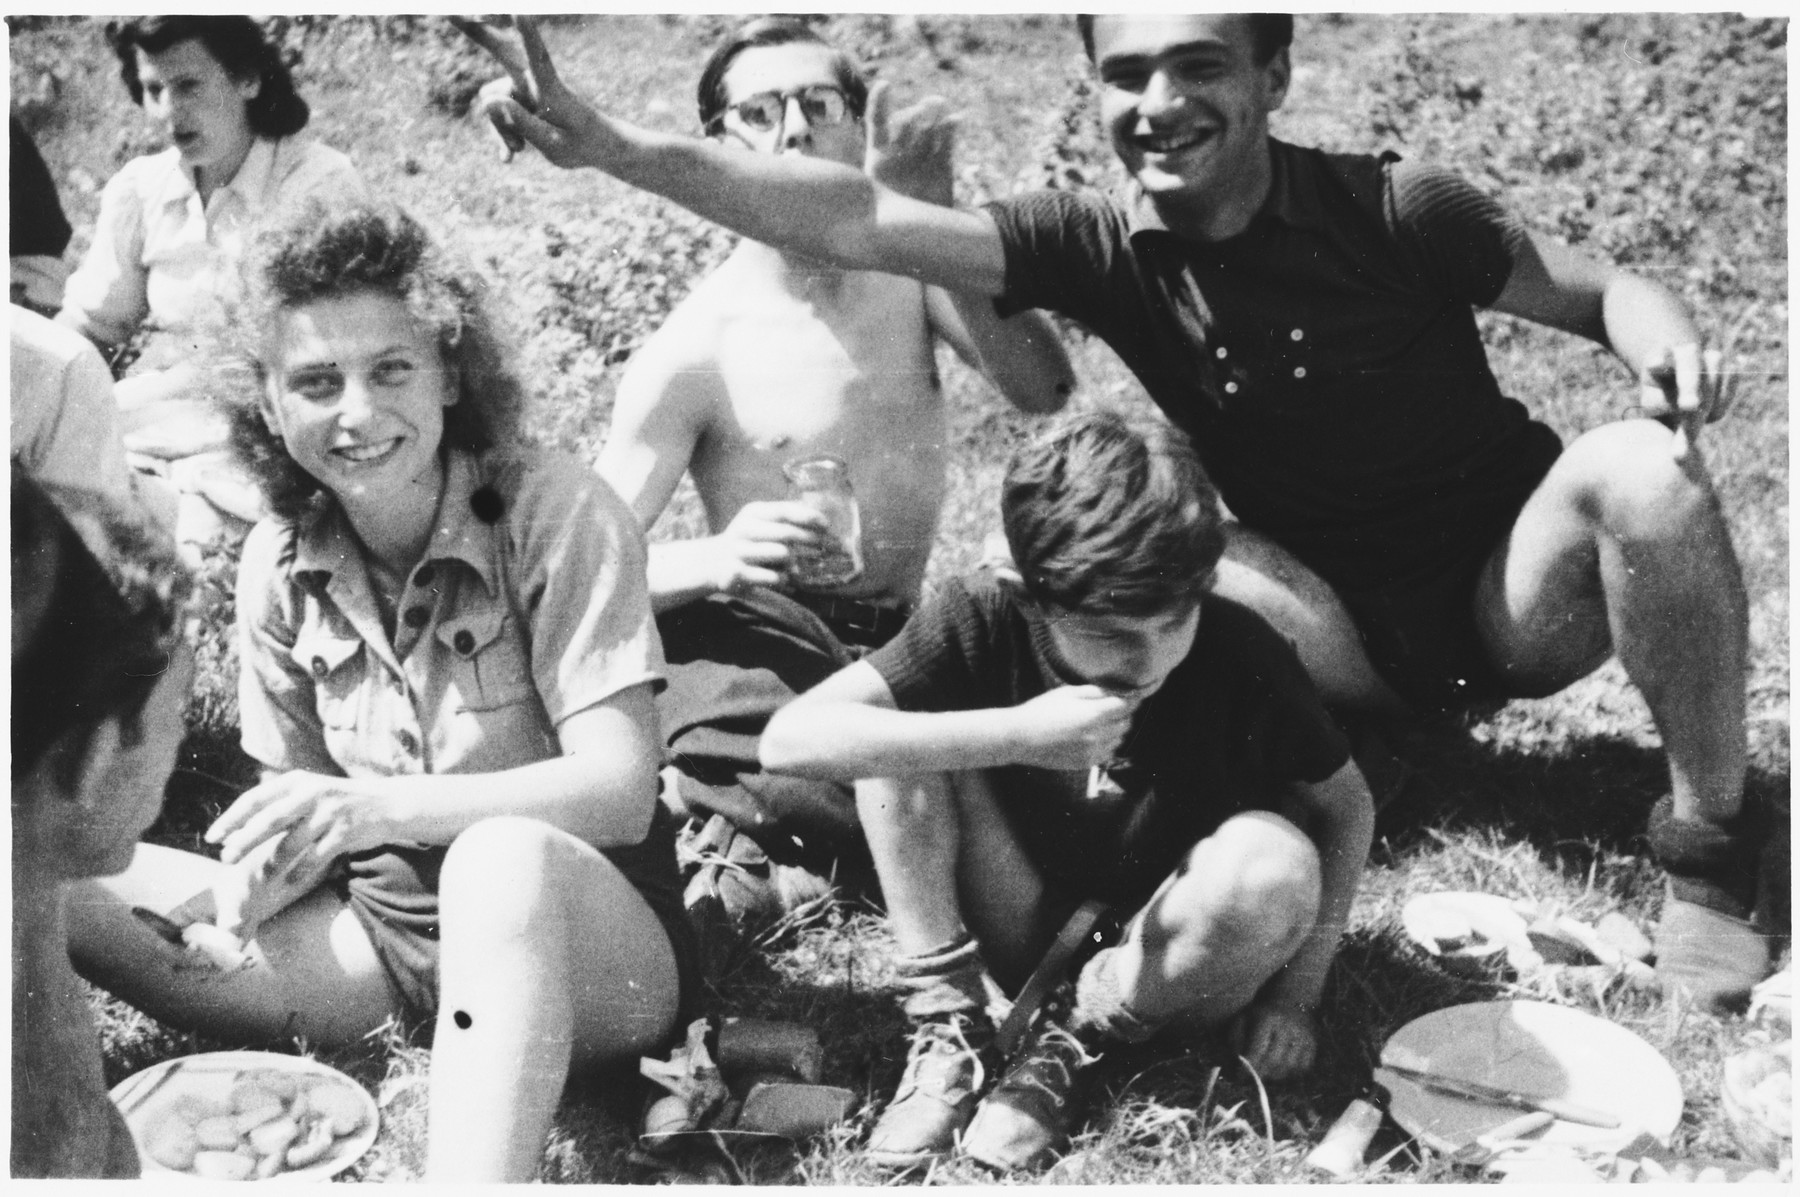 Members of Armée Juive enjoy a picnic in their training camp in the Alps.  Among those pictured are: Sabine Einhorn (left), Denis Hauser (front, right looking down), Joseph Fuchs (back center), Michael Latchiver (young boy) and Georges Schneck (back right).